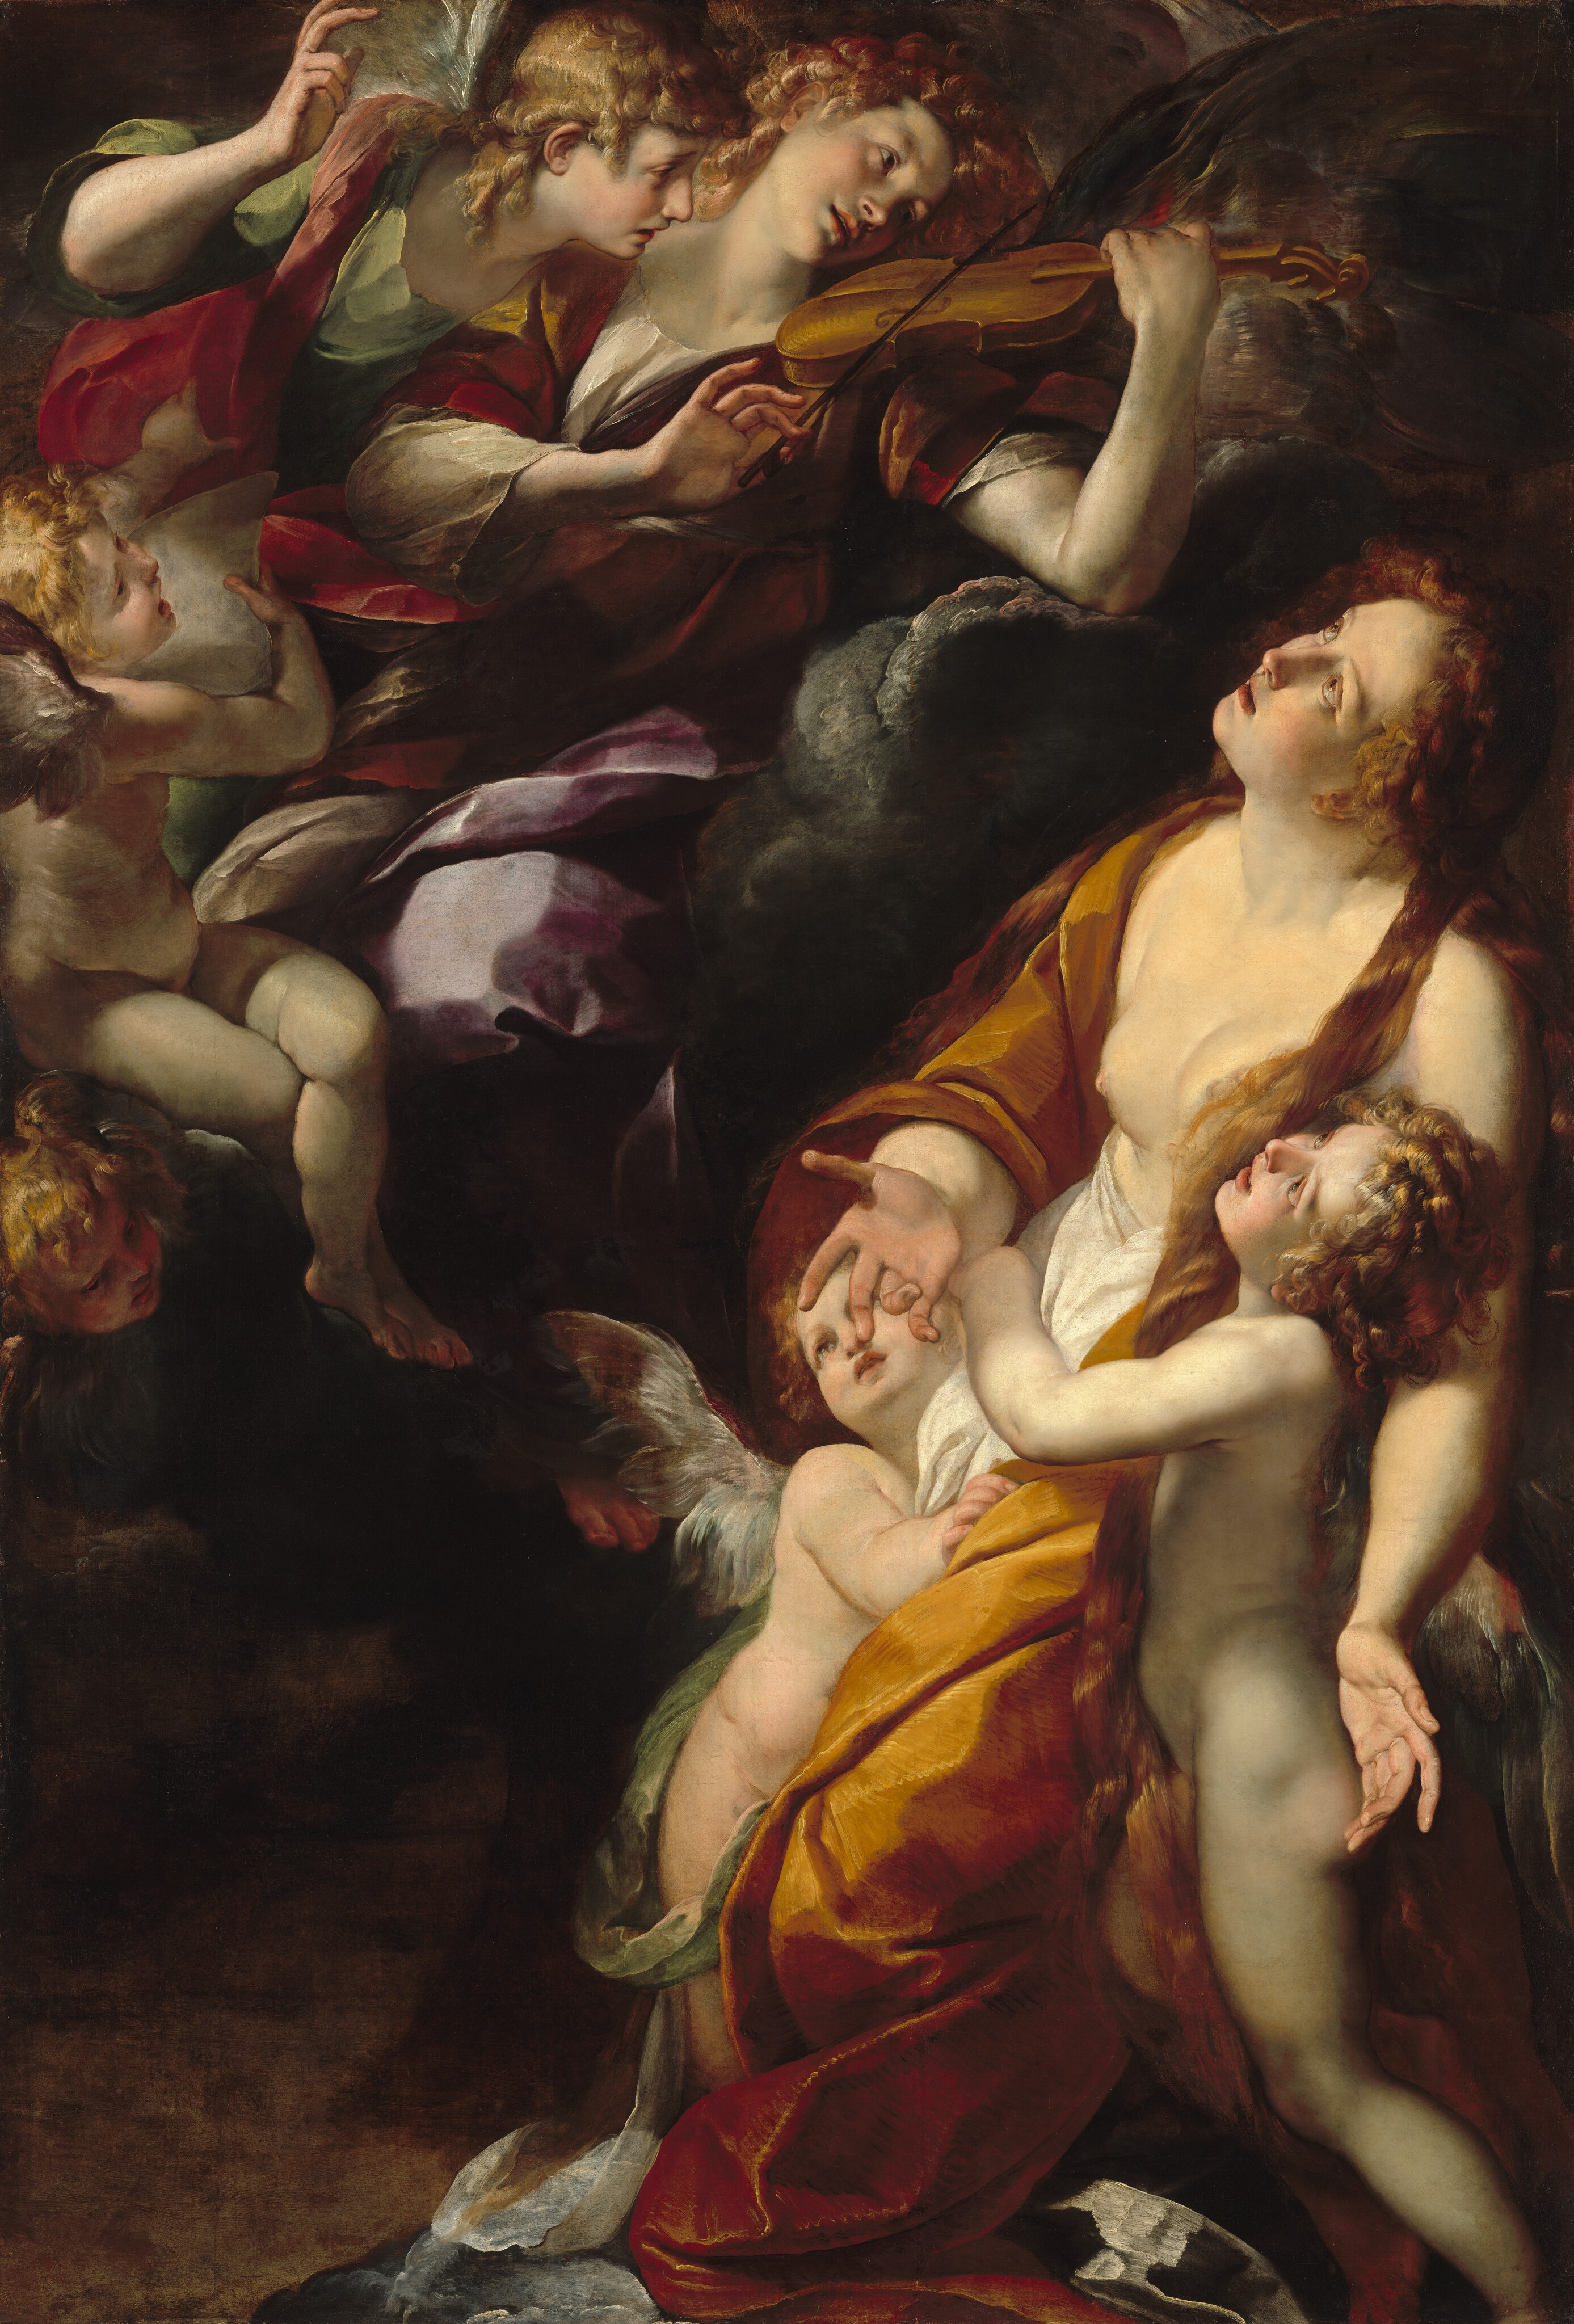 Mary Magdalen swoons in ecstasy as she is supported by winged putti below a group of refined celestial music-making angels. The two figure groups are united through gesture, glance, and expression to form one of Procaccini's most successful compositions.